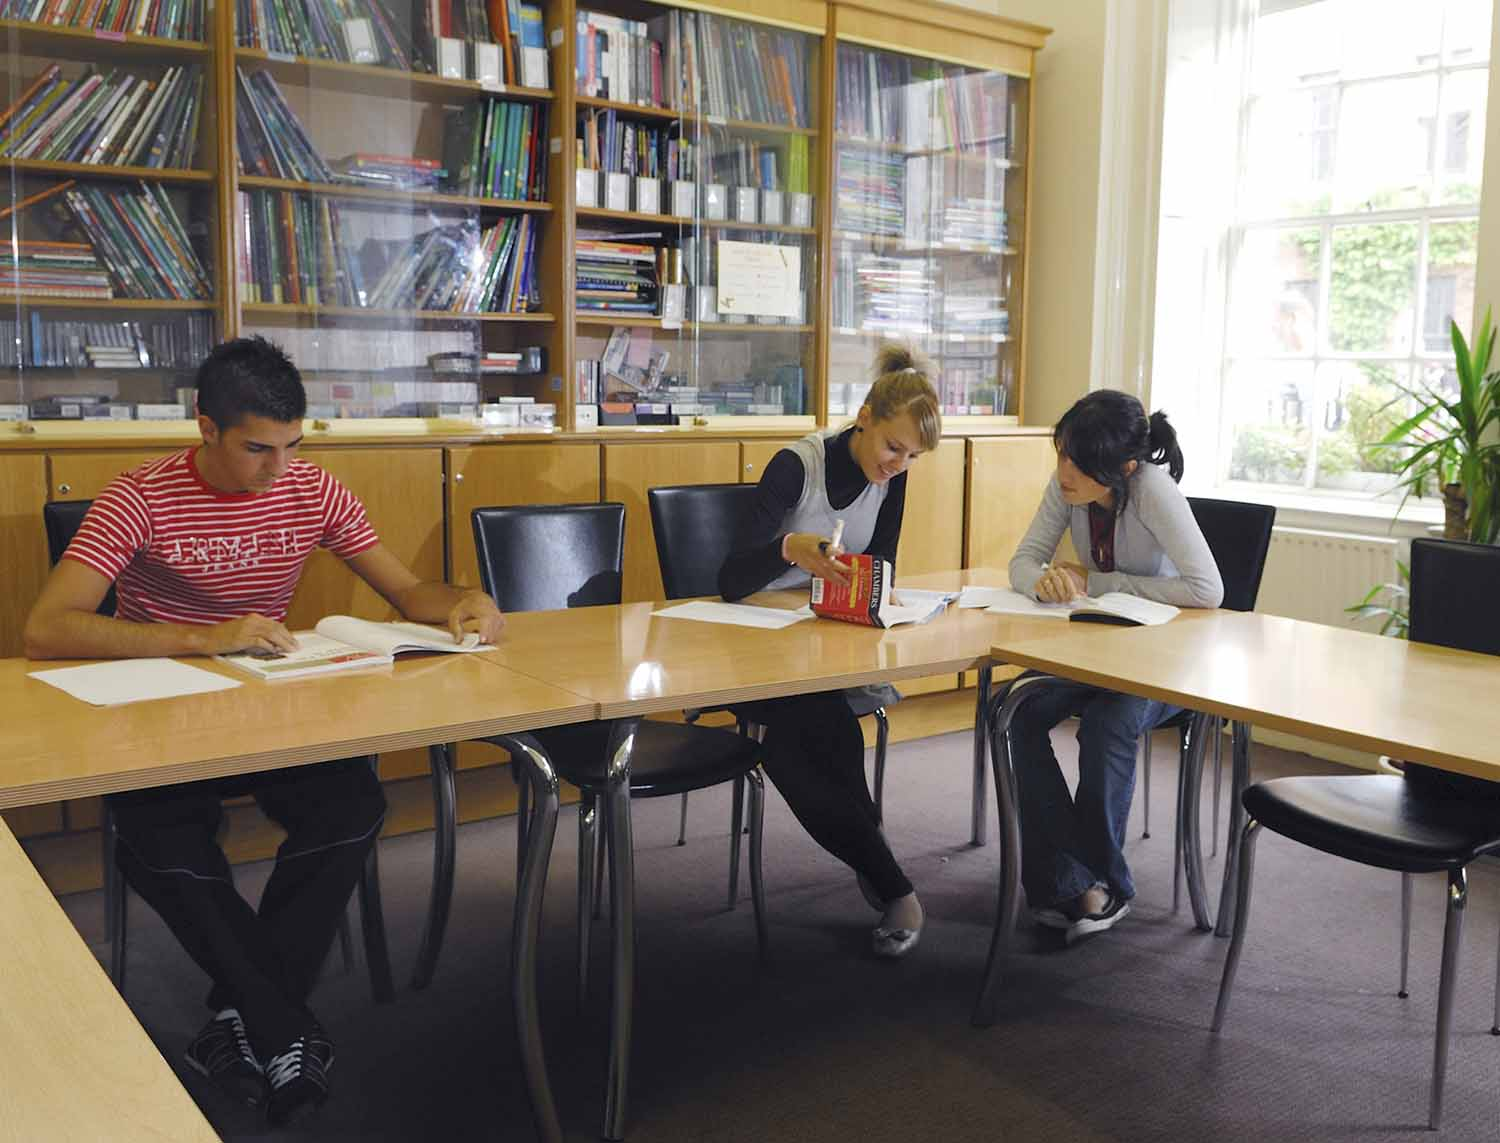 Dublin_School_Library_Students_01